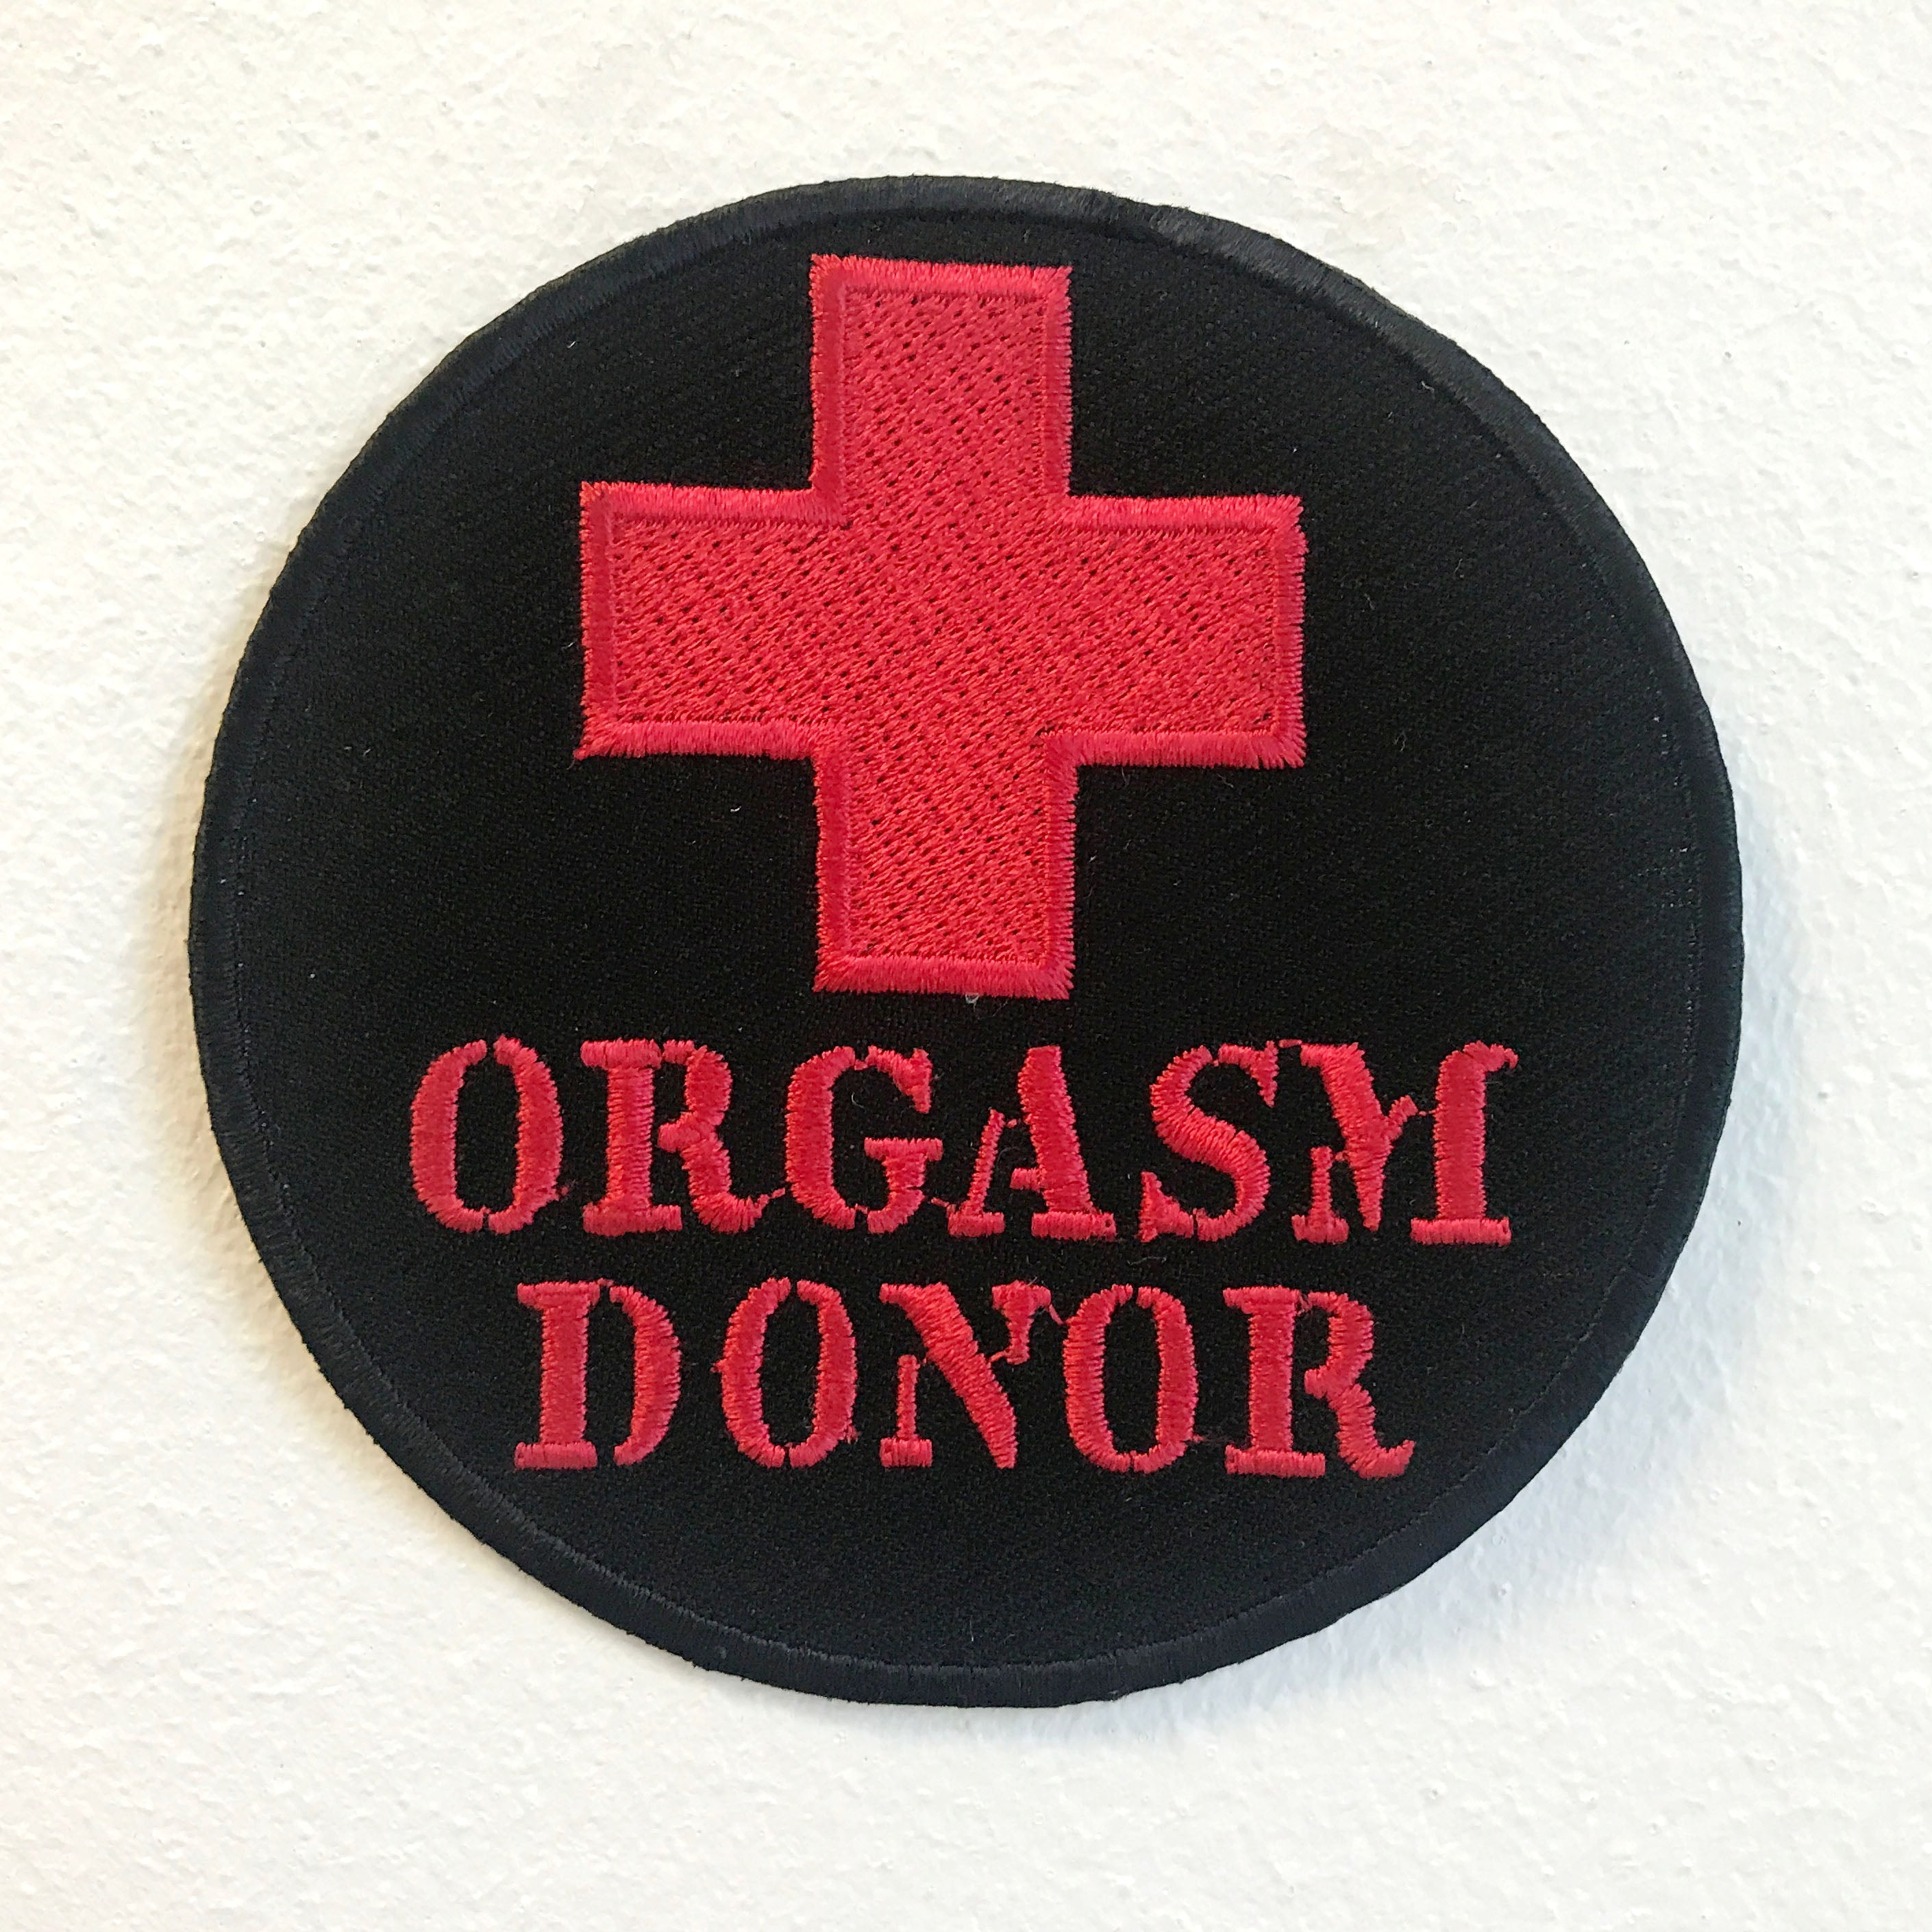 Orgasm Donor Black Badge Iron on Sew on Embroidered Patch